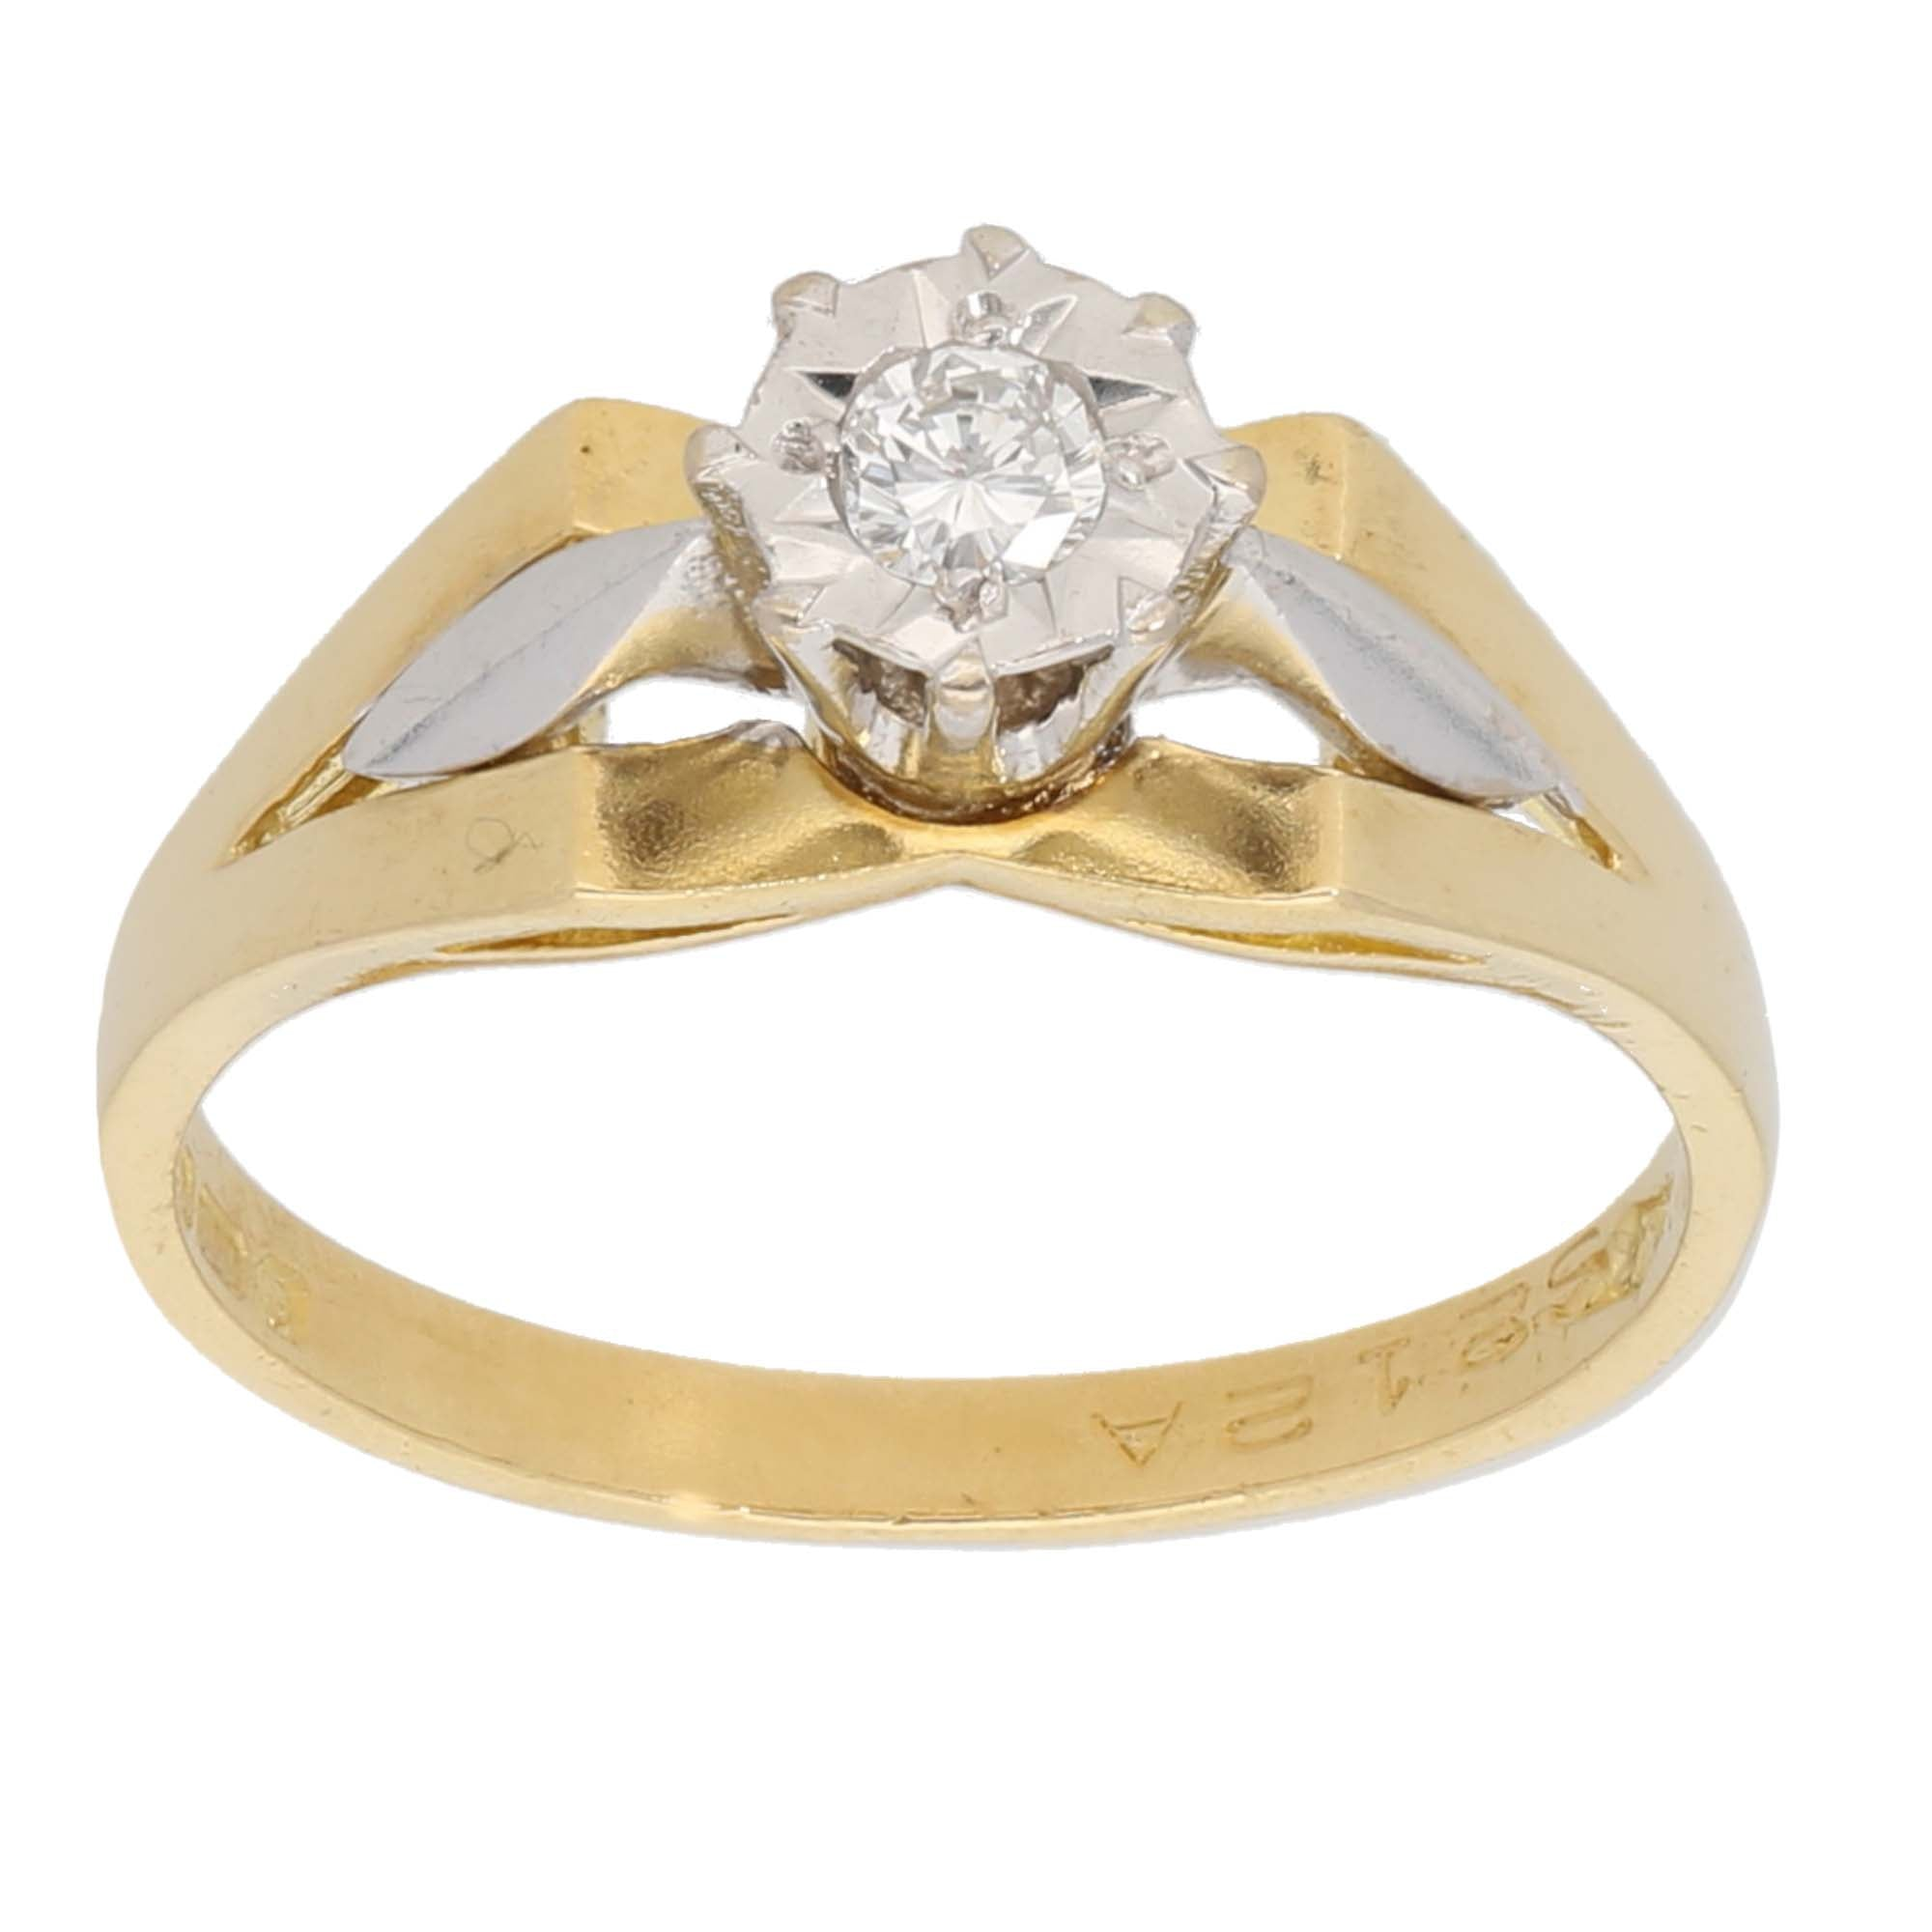 18ct Gold 0.10ct Round Cut Diamond Ladies Solitaire Ring Size M